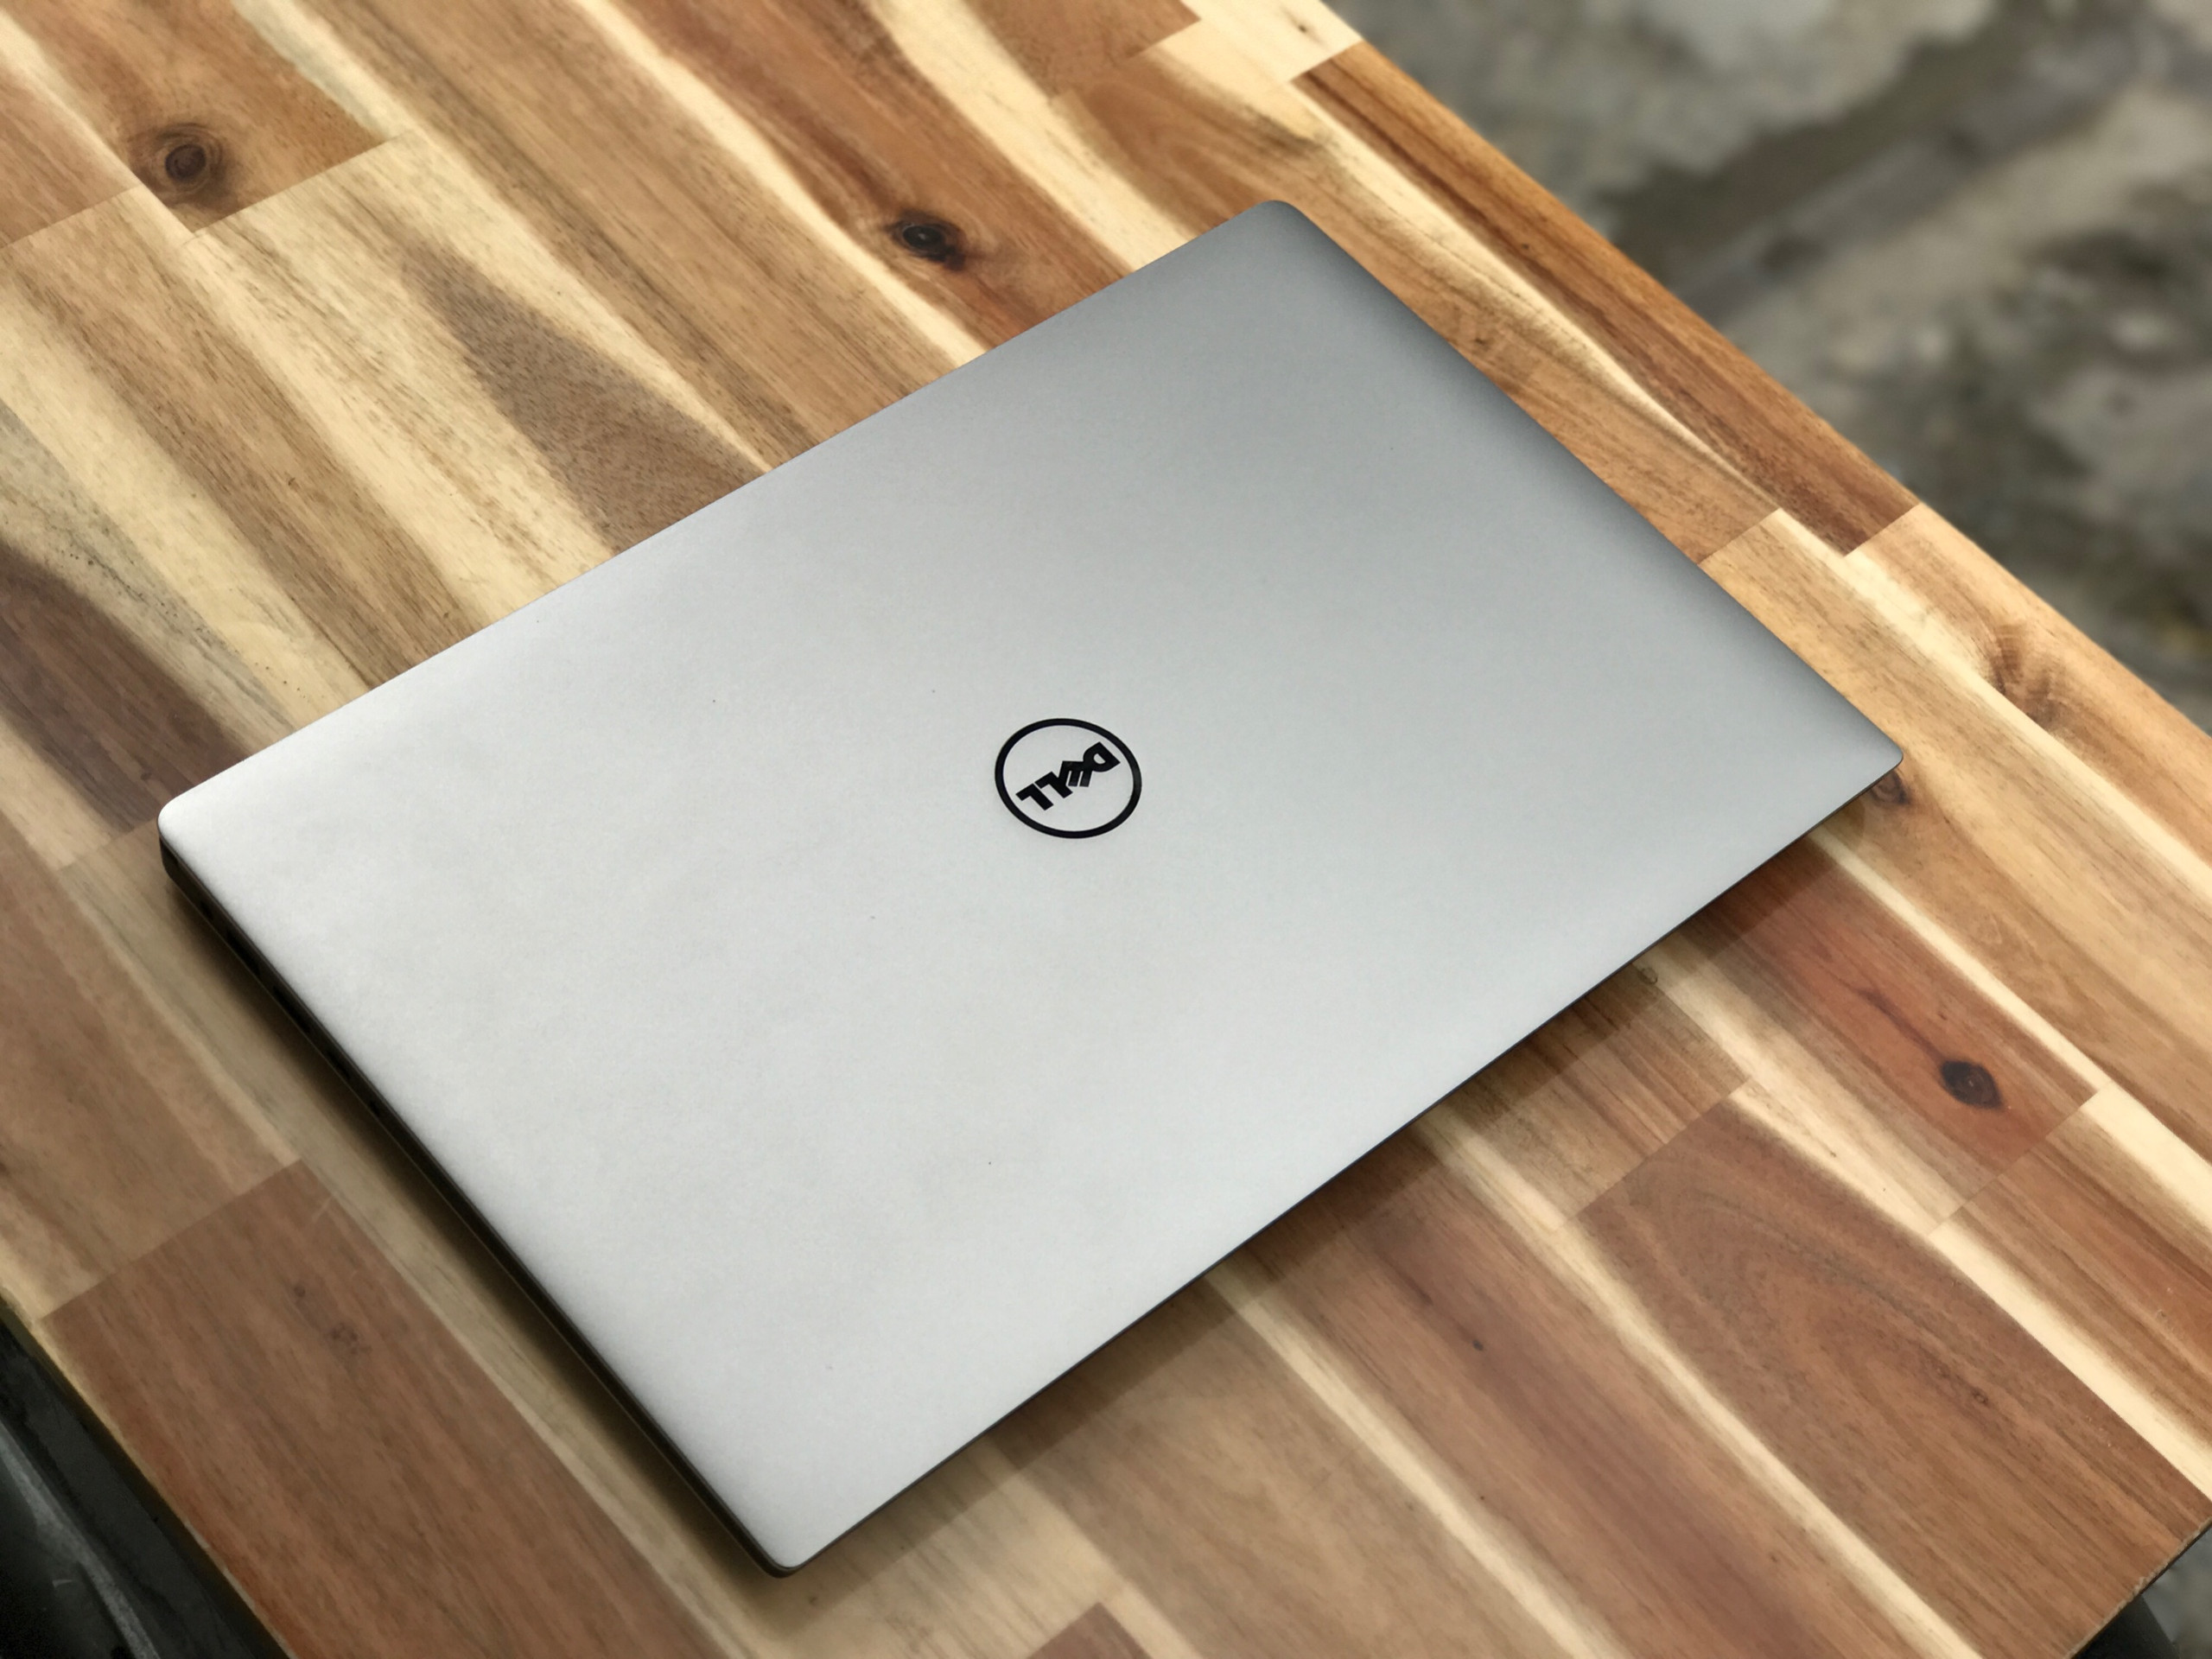 Laptop Dell XPS 15 9560, I7 7700HQ 16G SSD512 4K GTX1050 Like new zin 100% Giá rẻ2